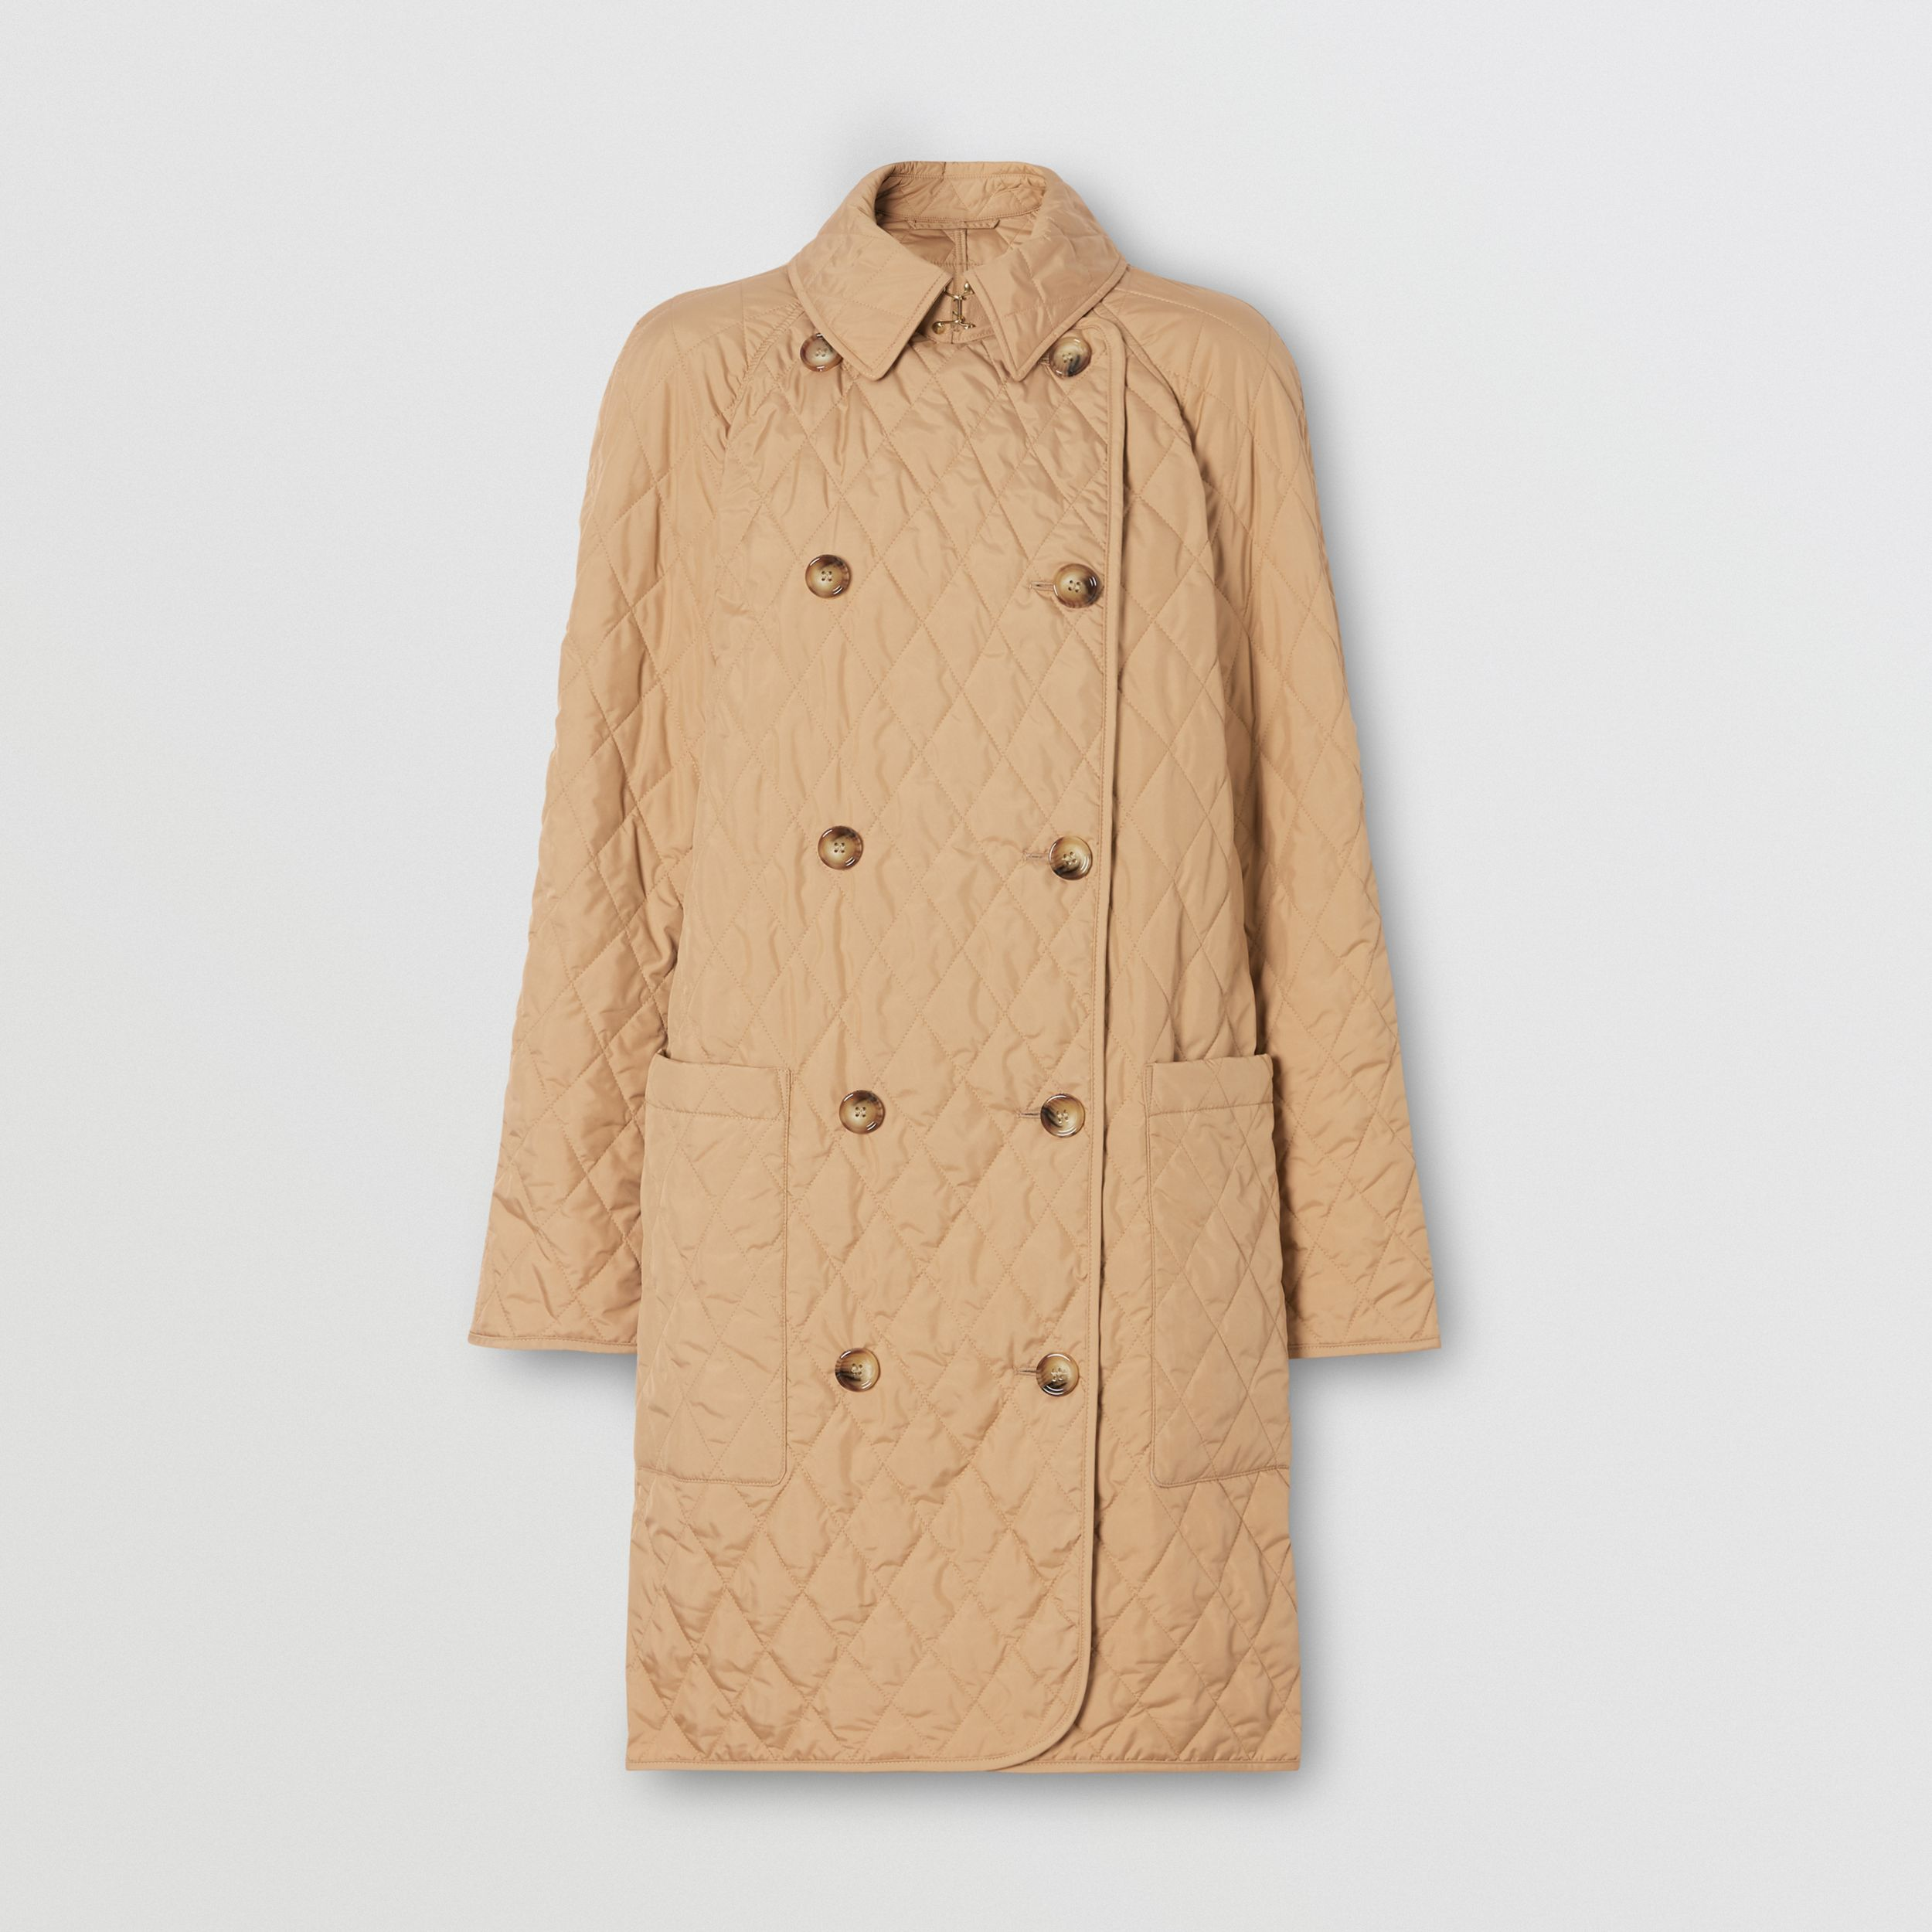 Diamond Quilted Double-breasted Coat in Biscuit - Women | Burberry - 4